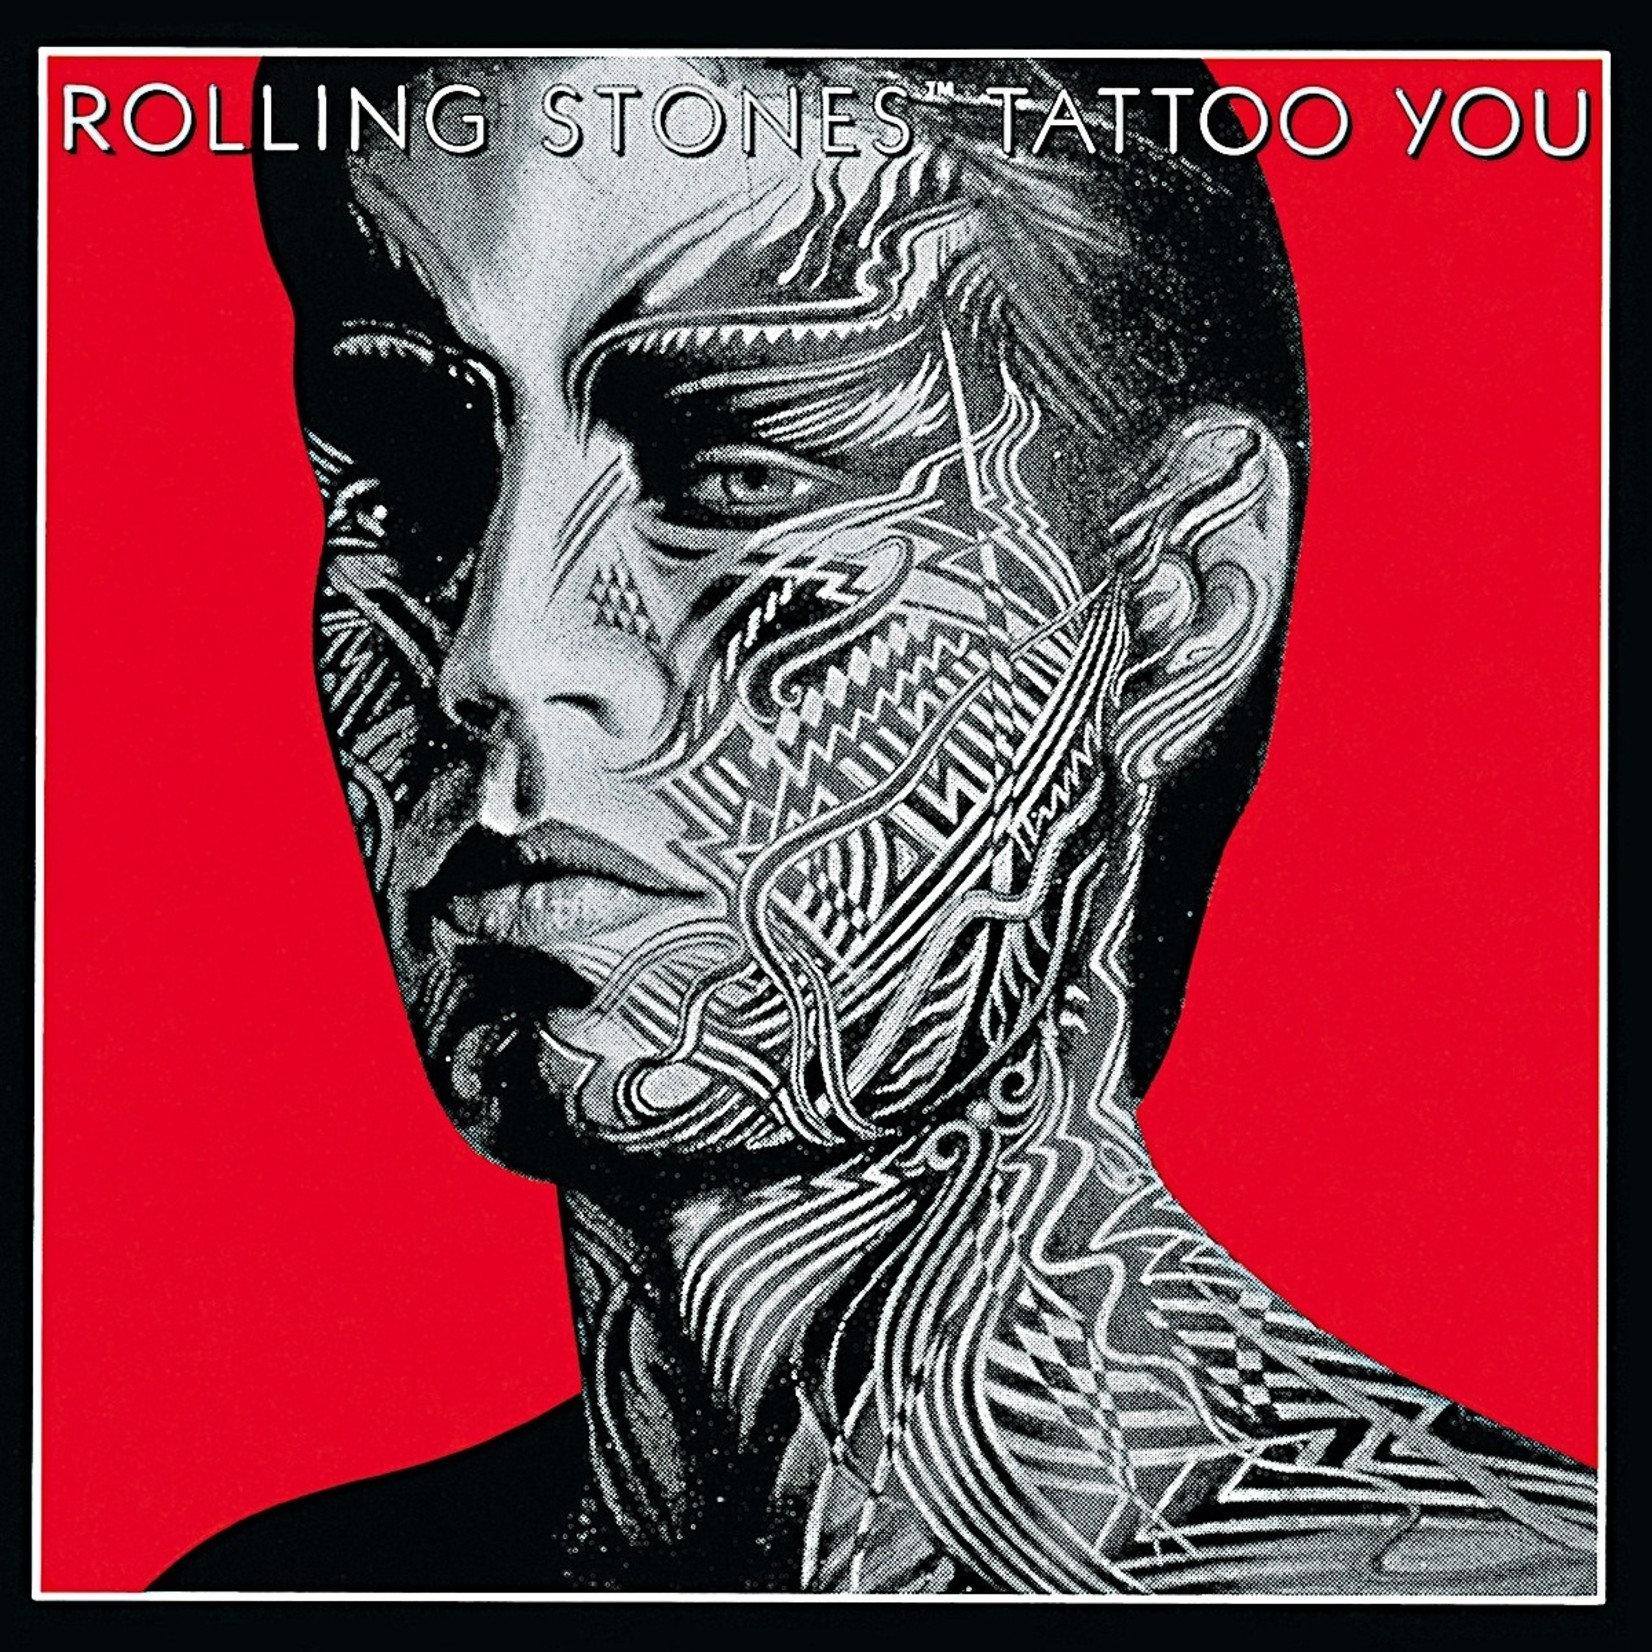 [New] Rolling Stones: Tattoo You (half-speed remaster)